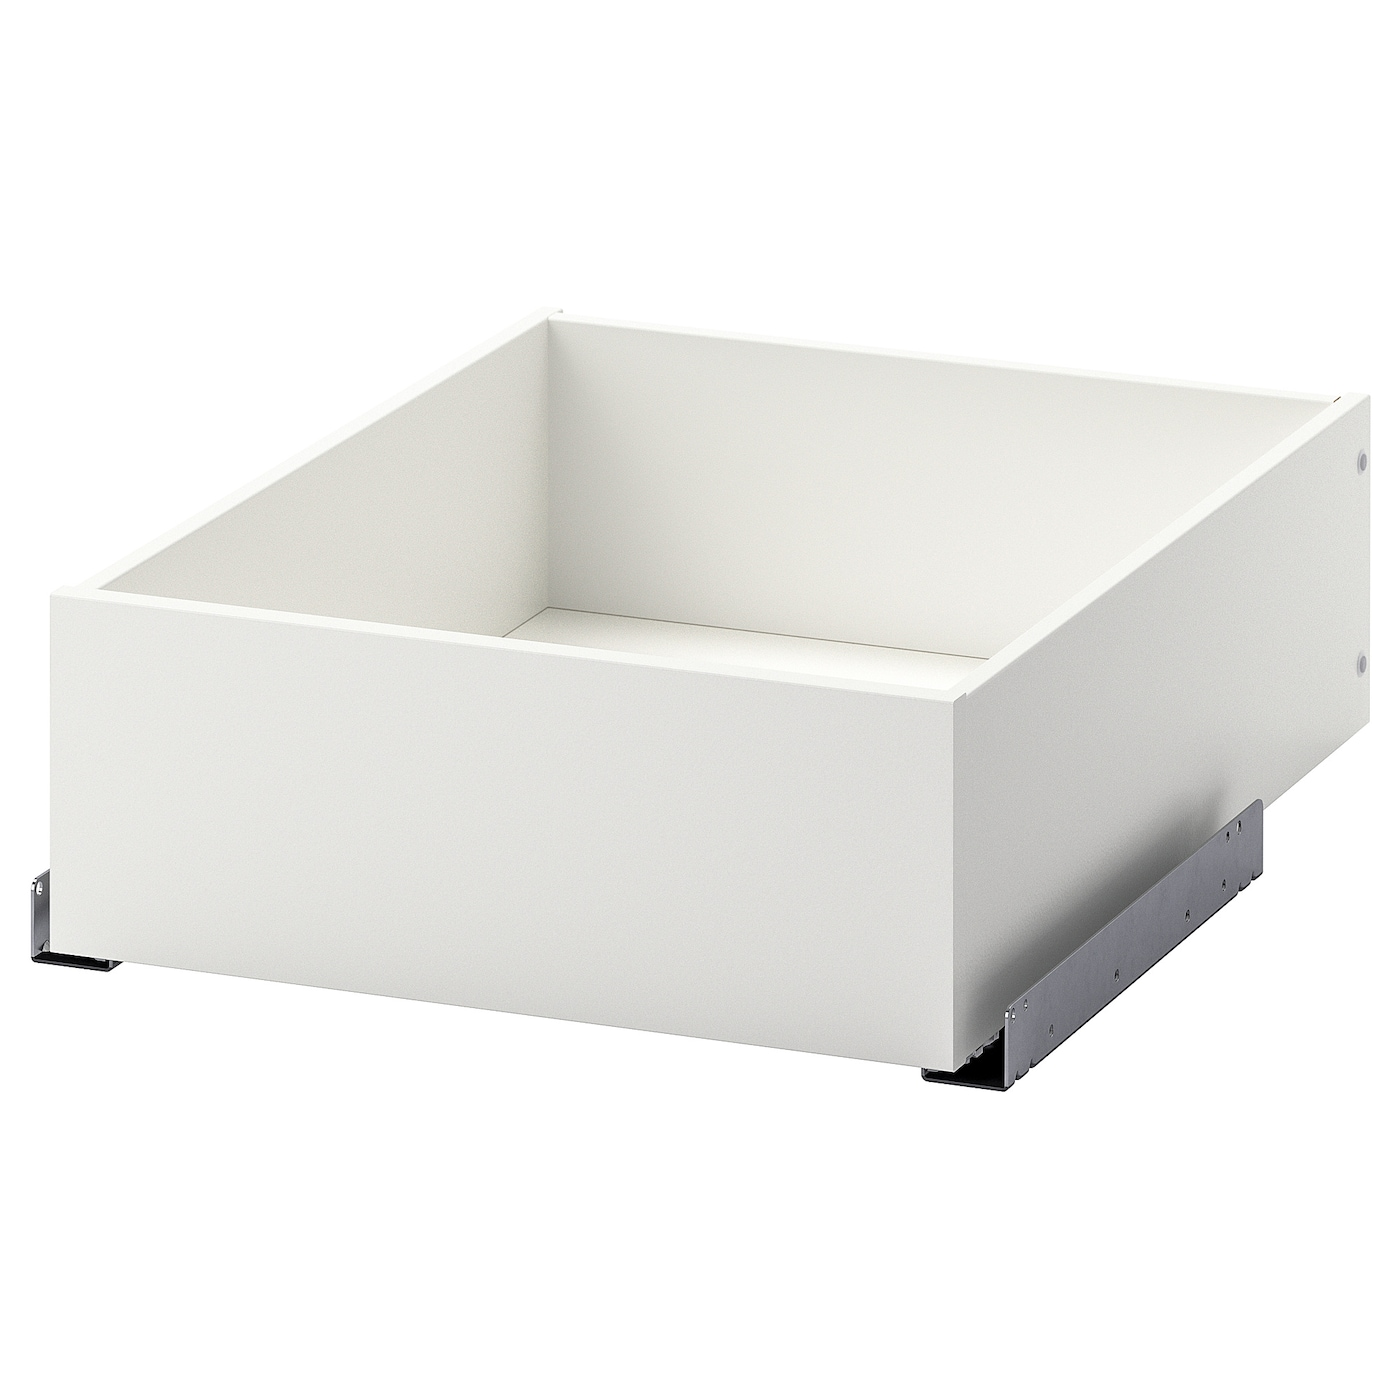 komplement tiroir blanc 50 x 58 cm ikea. Black Bedroom Furniture Sets. Home Design Ideas